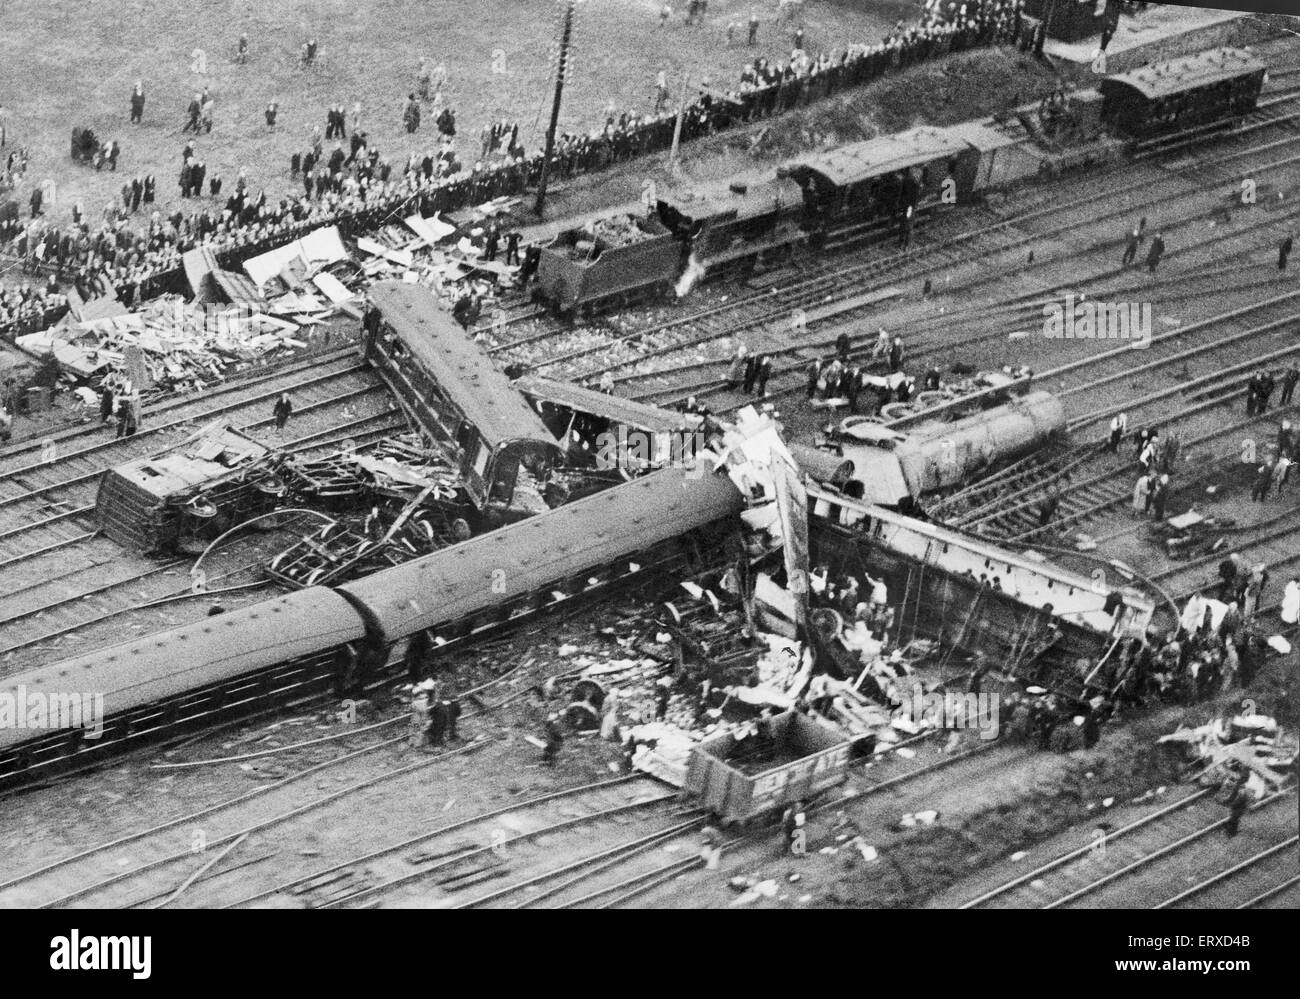 "Leighton Buzzard train crash: Aerial view of the wreckage following the derailment of Royal Scot No. 6114 ""Coldstream Stock Photo"